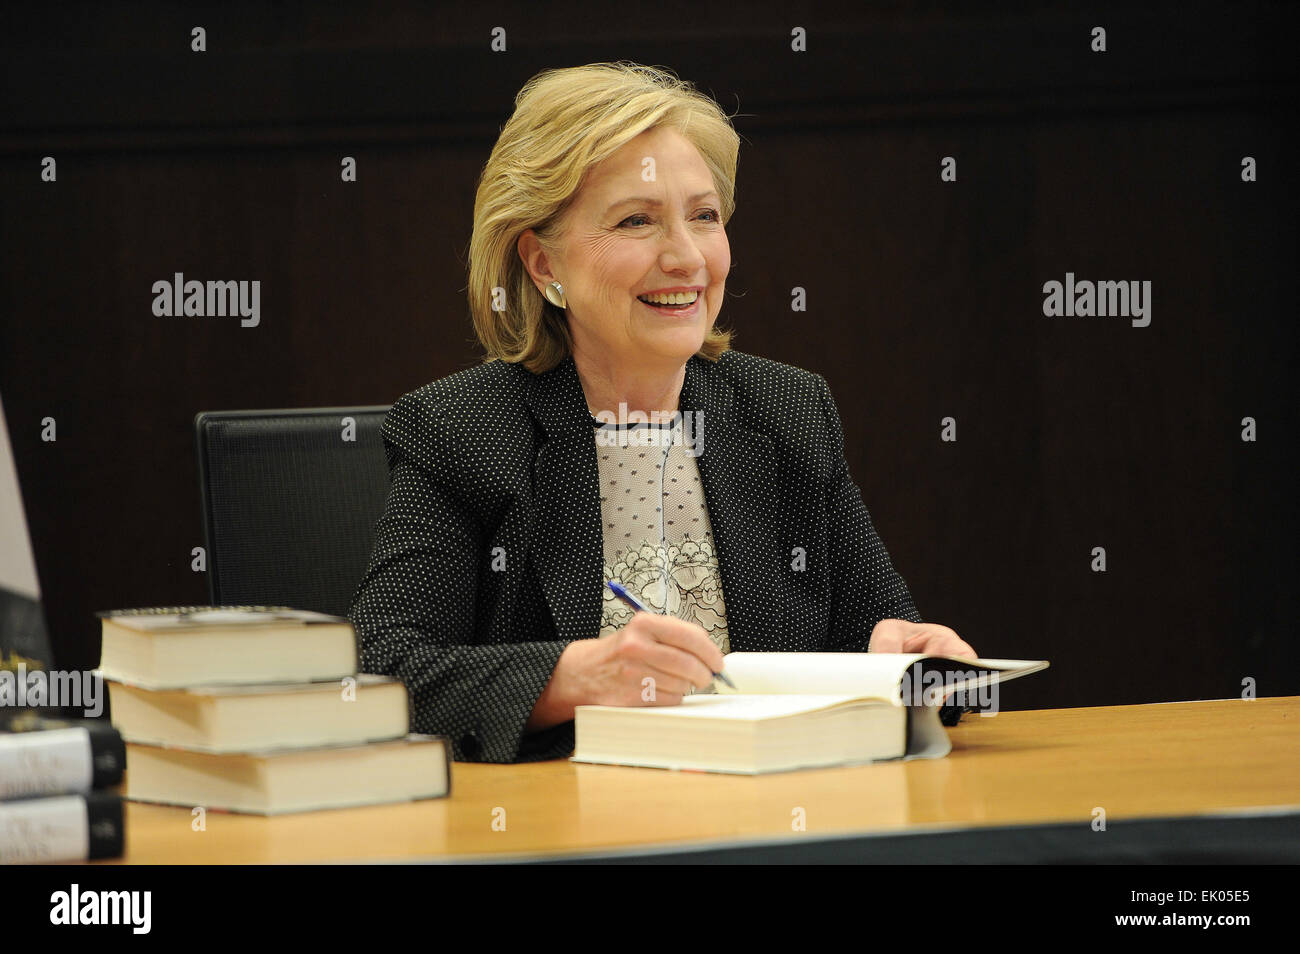 Hillary Clinton S Book Signing For Hard Choices At Barnes Noble